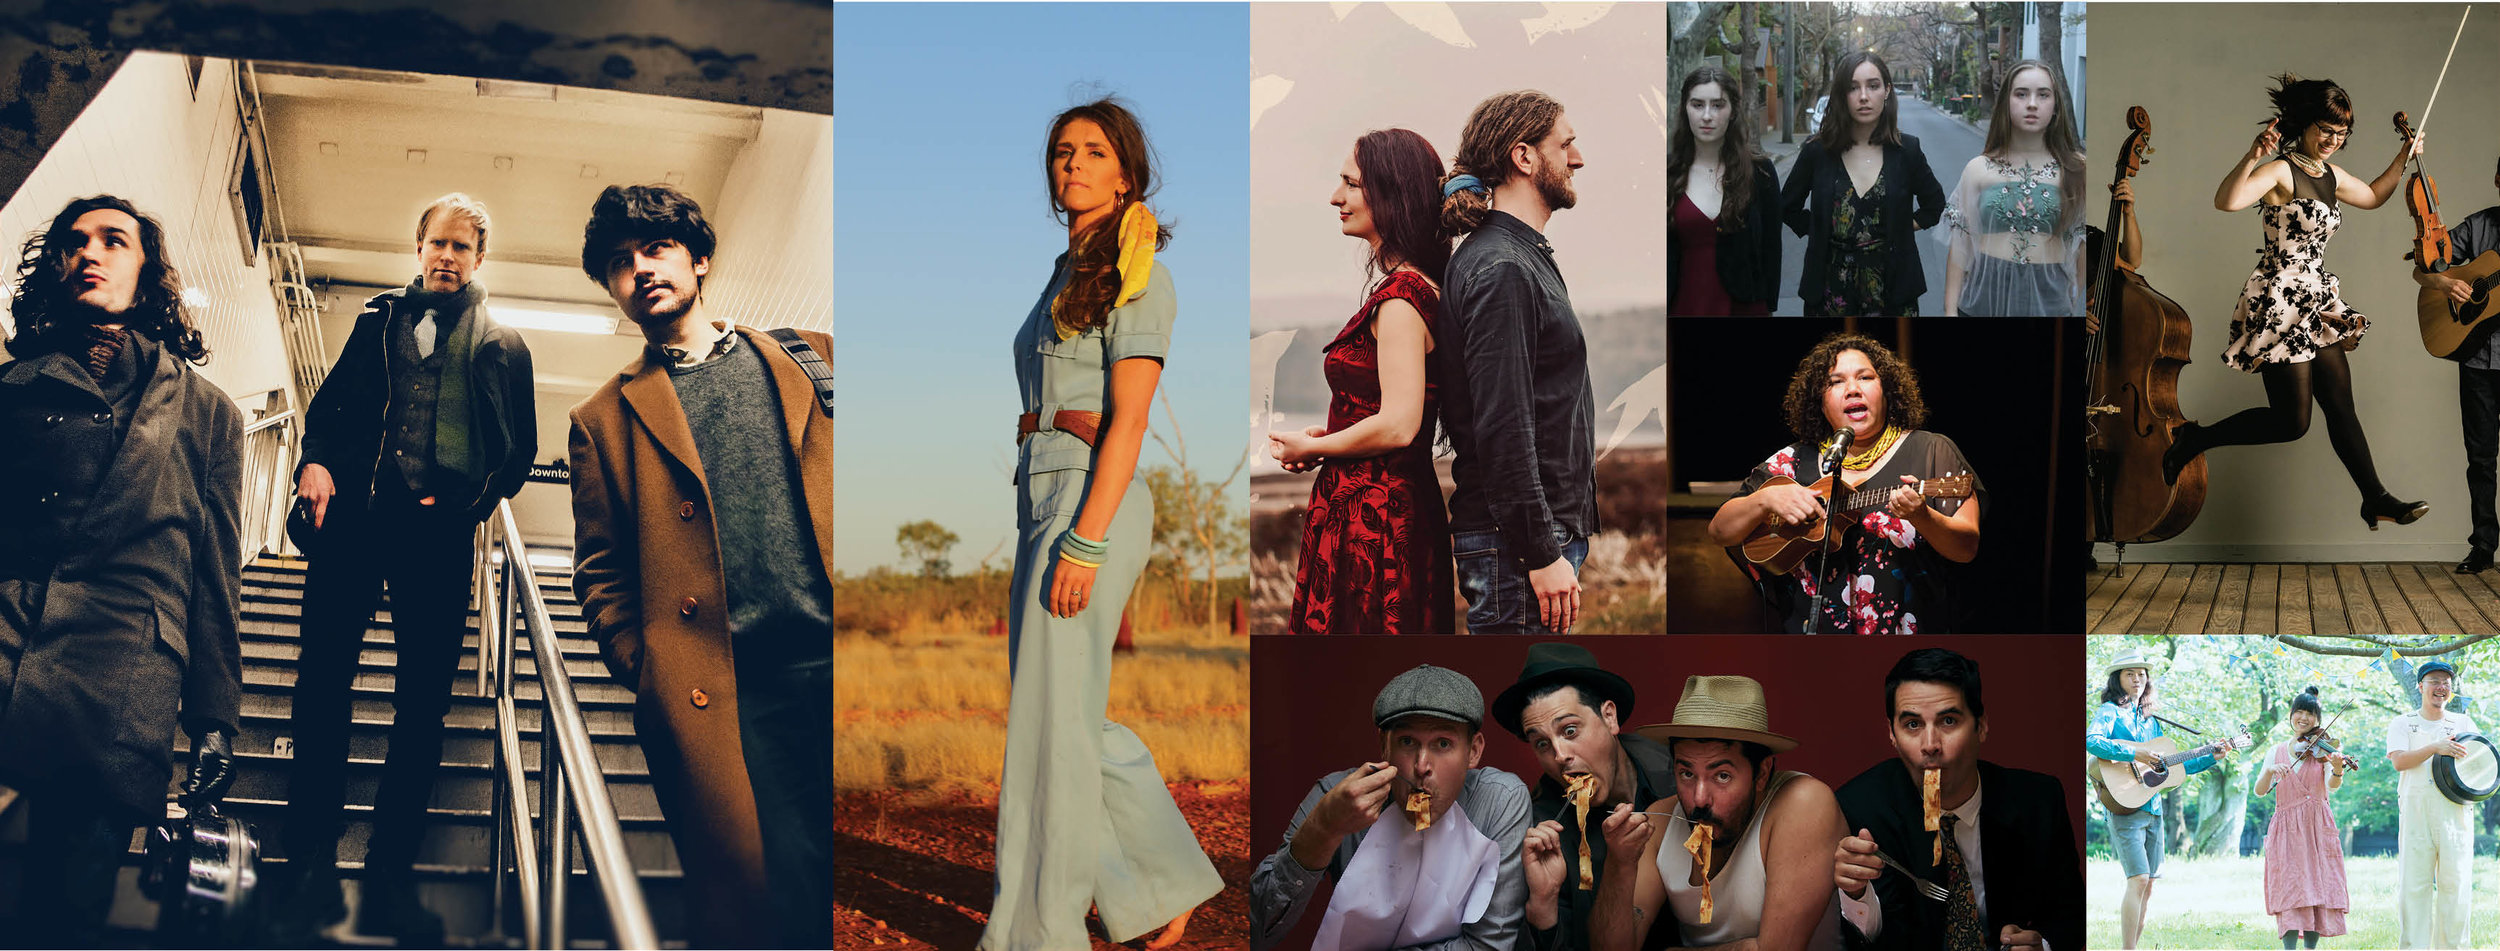 Added to the 2019 National Folk Festival Lineup today L-R: Kittel and Co.(USA), Fanny Lumsden (AUS), Edgelarks (UK), Little Quirks (AUS), Mission Songs (AUS), The April Verch Band (CAN/USA), The Cope Street Parade (AUS), John John Festival (JPN)